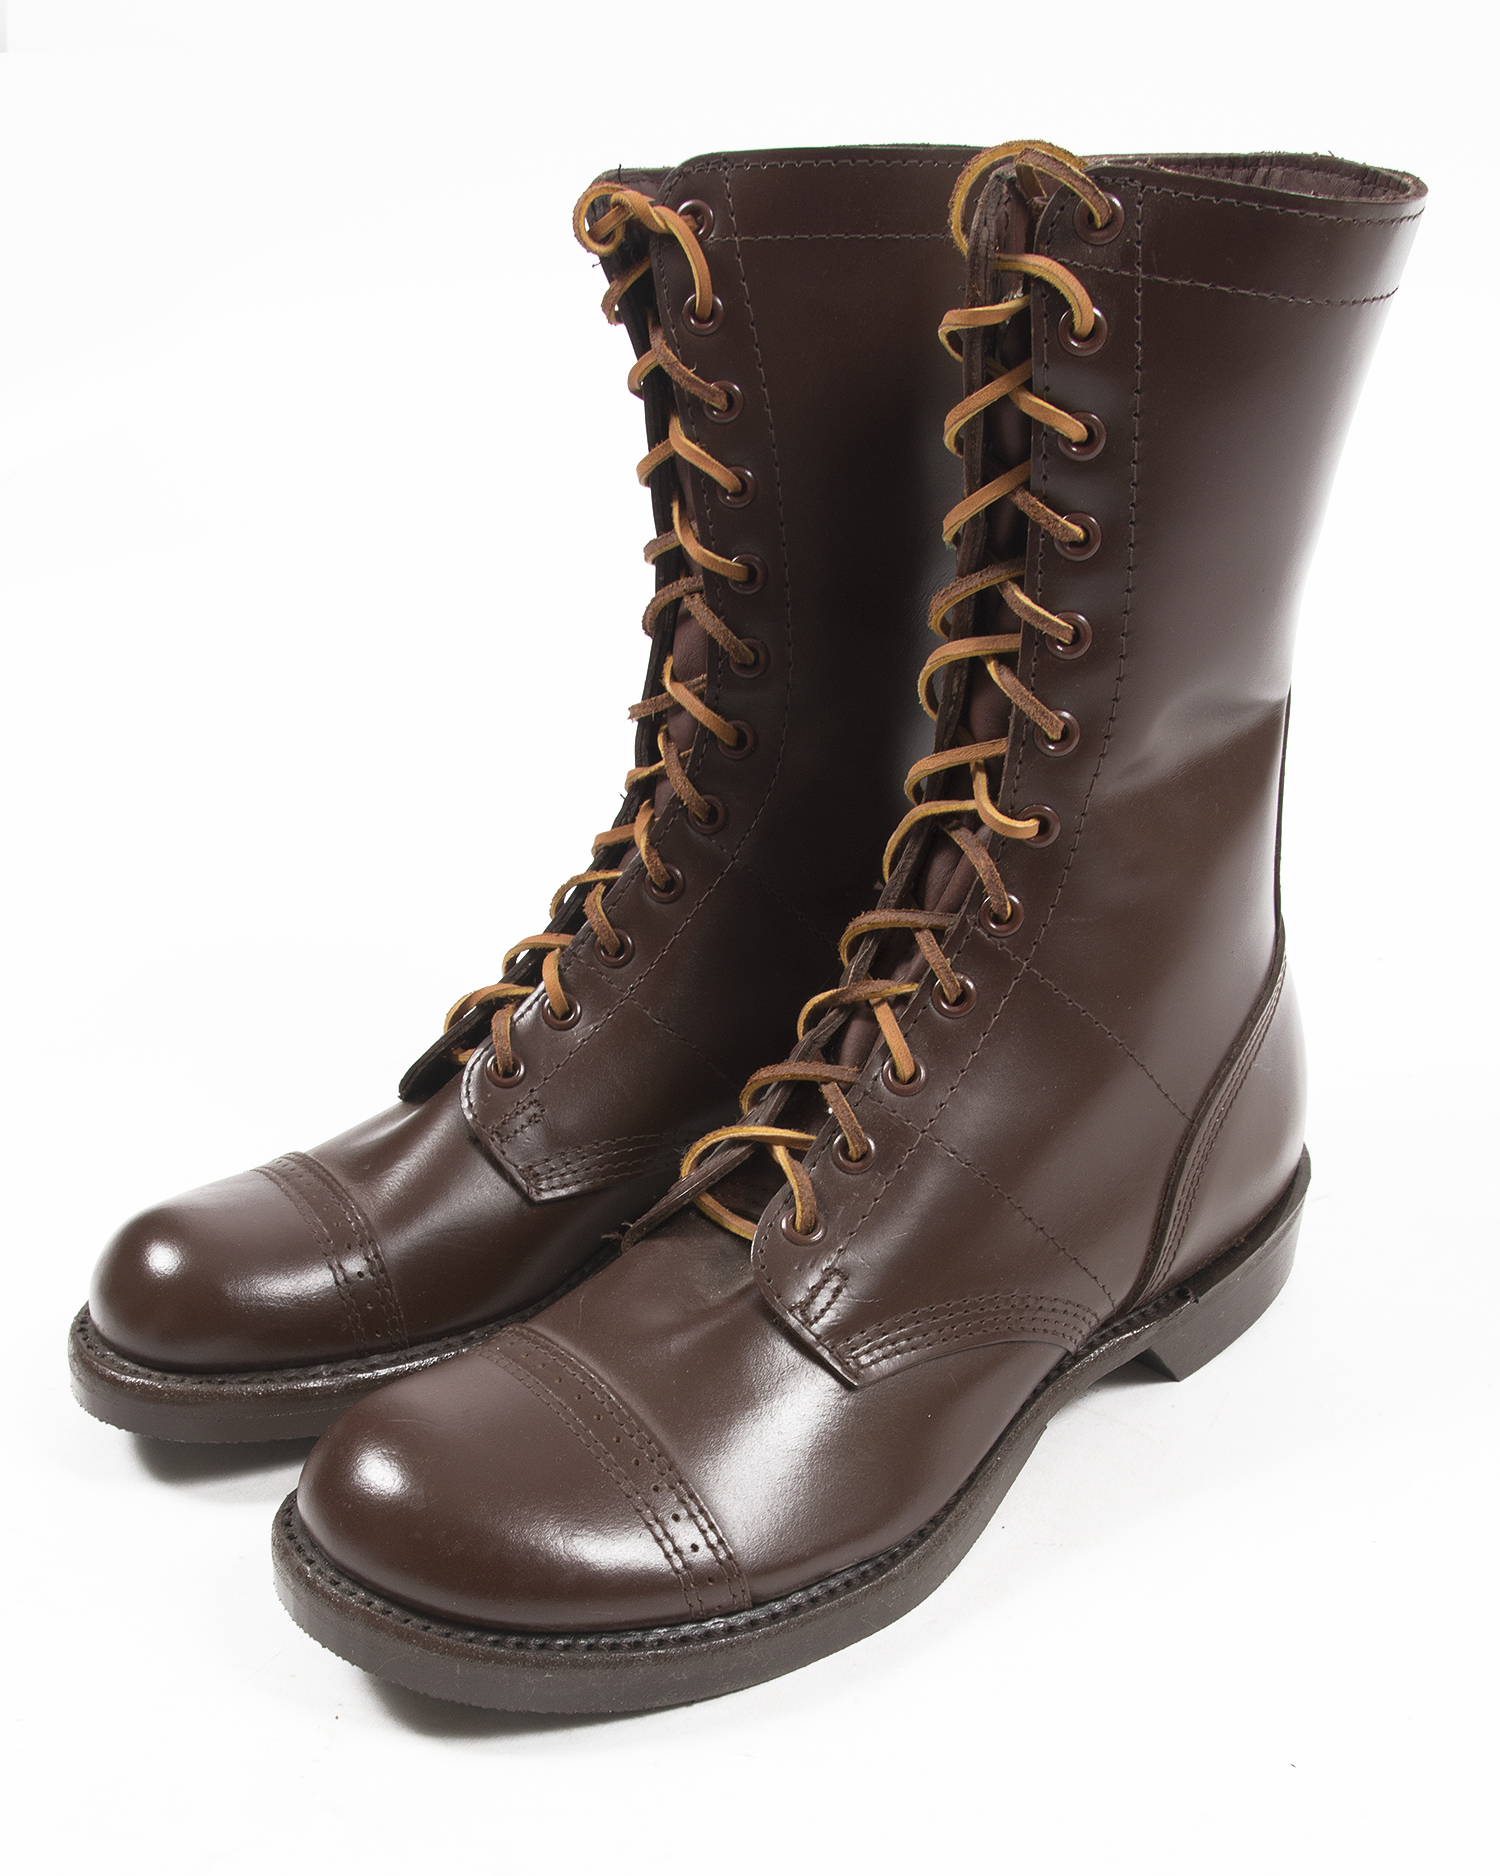 Wwii Corcoran Brown Jump Boots